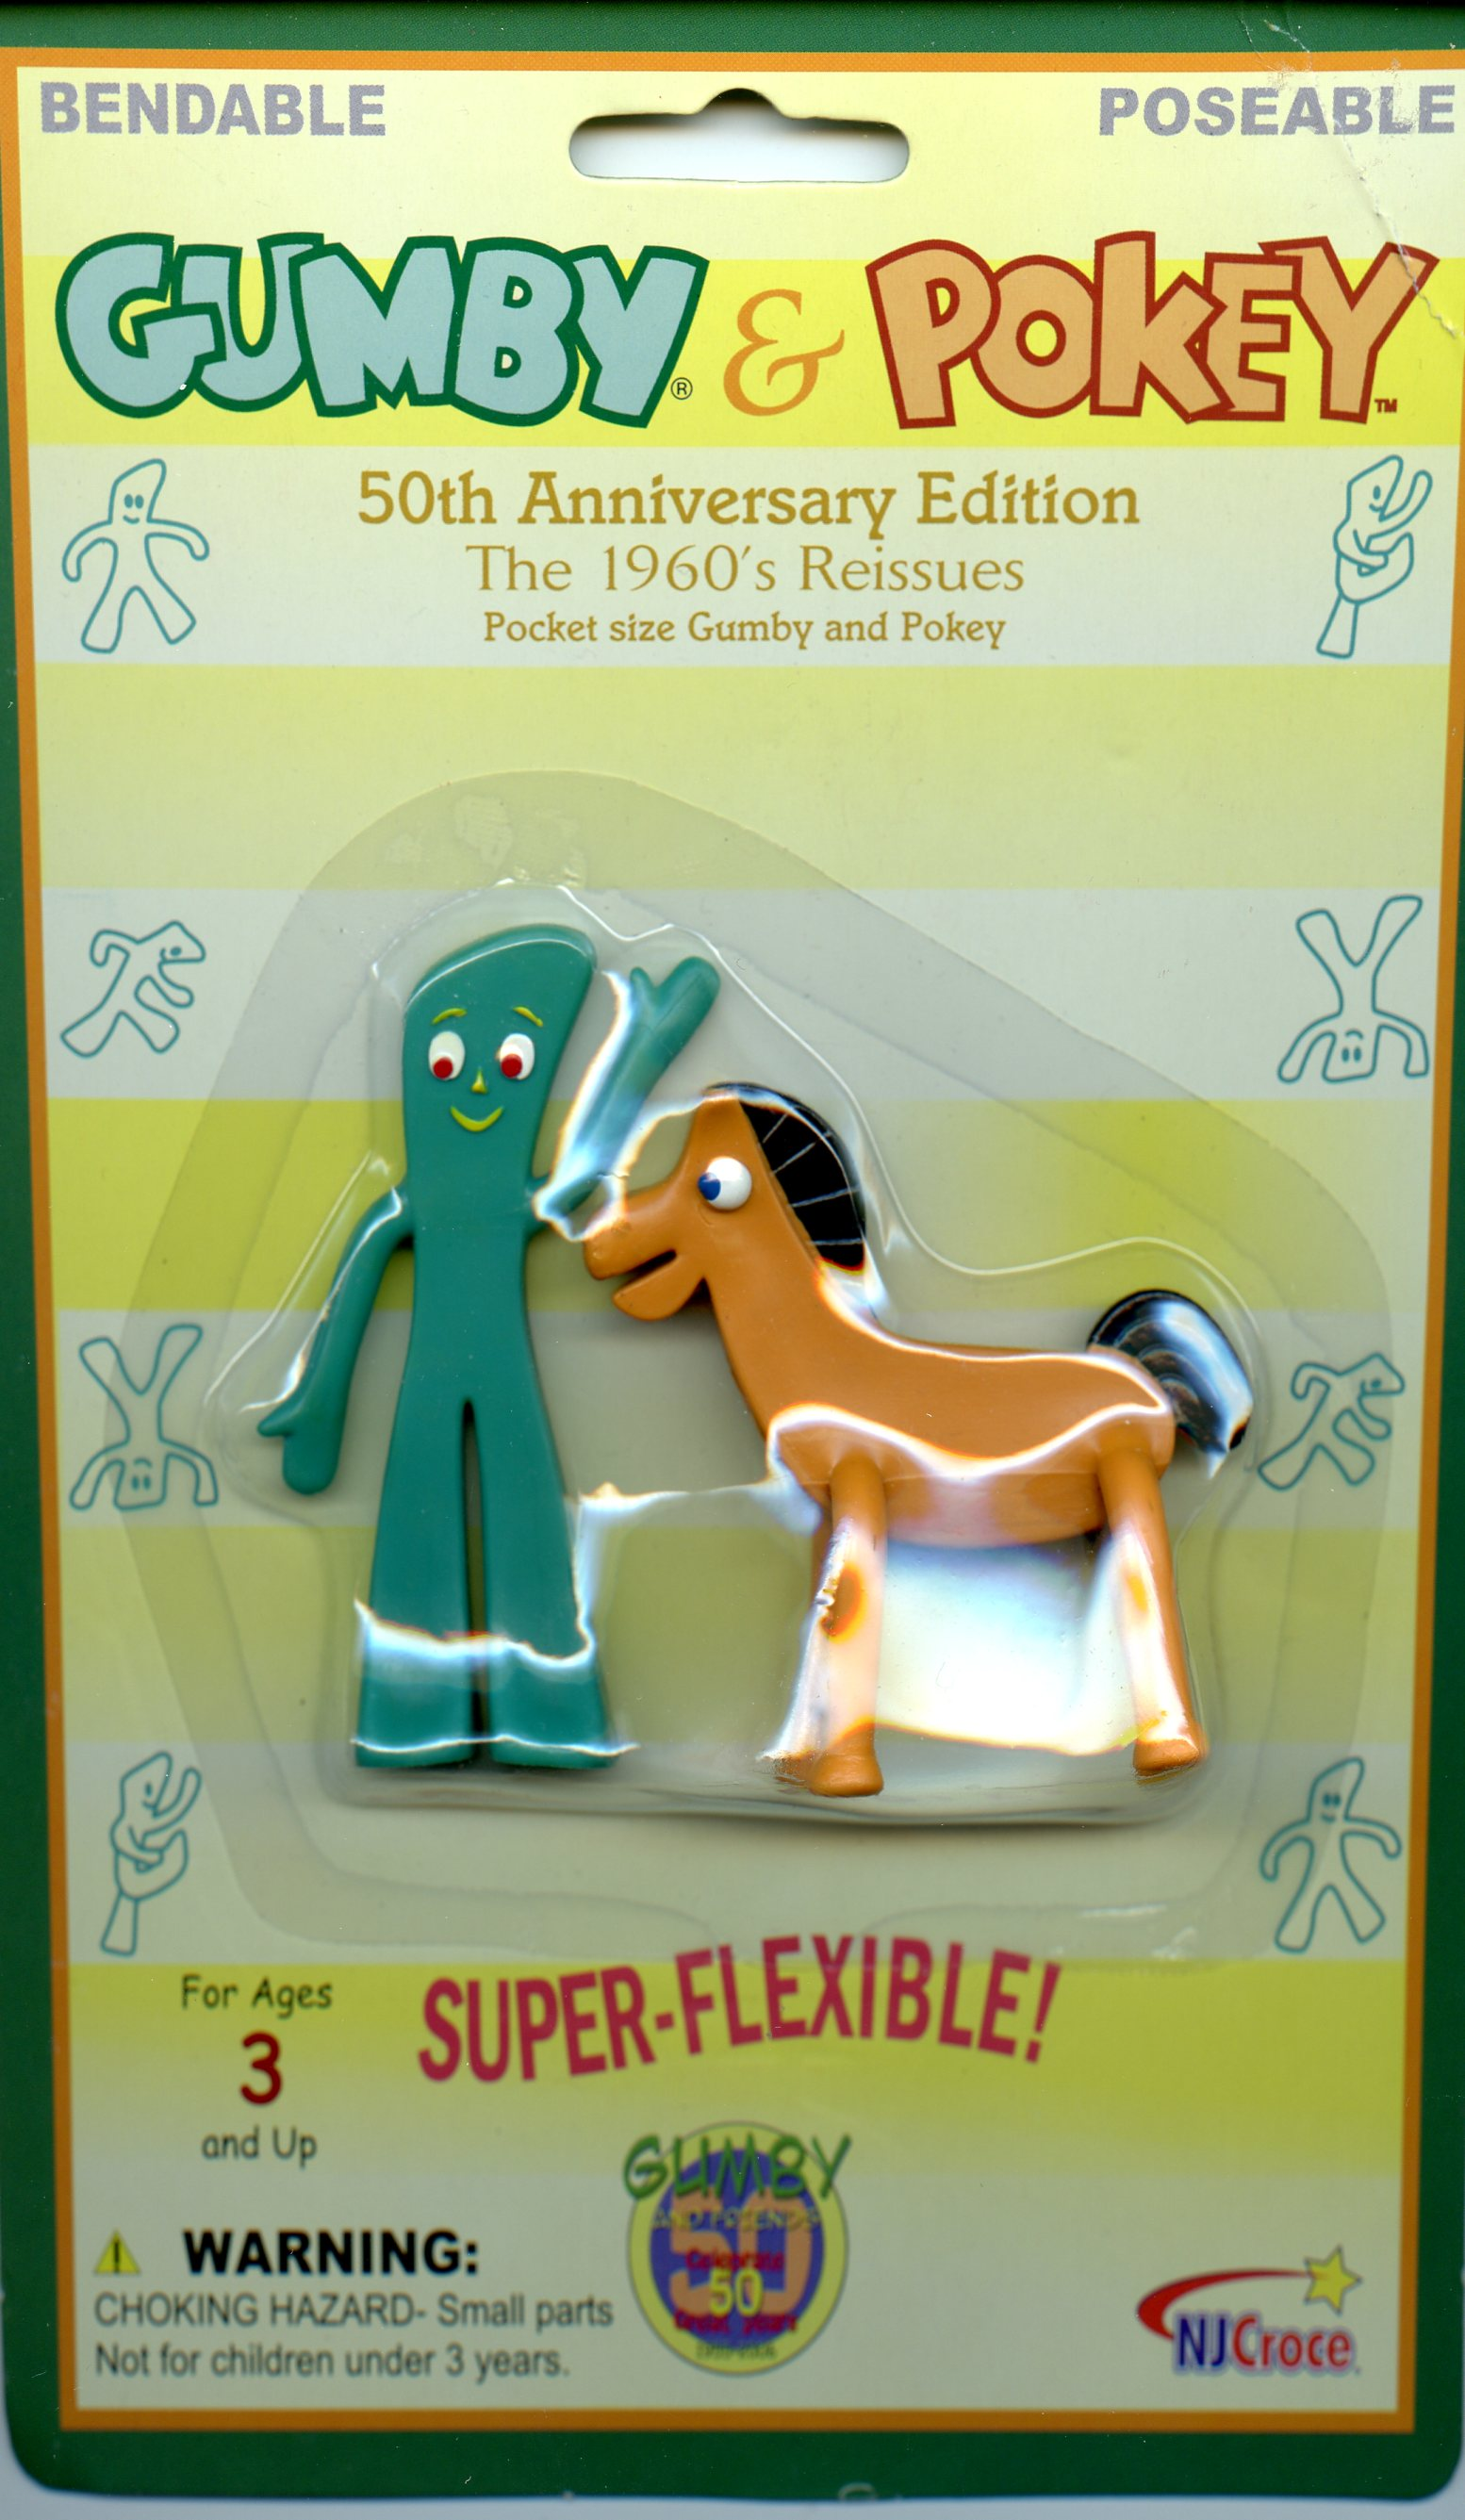 Gumby and Pokey 50th anniversary edition boxing